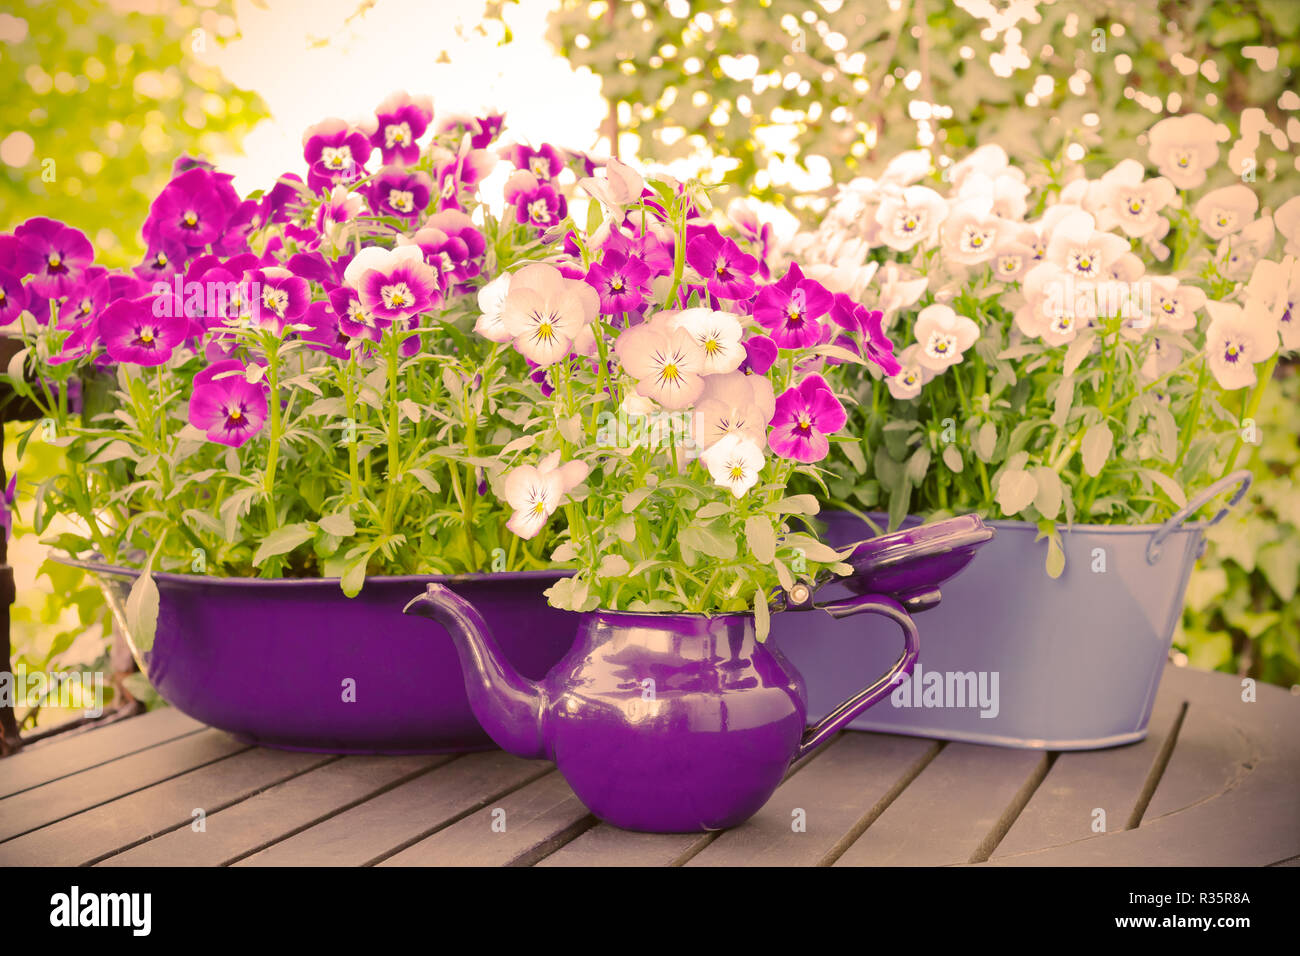 Purple, blue and violet pansy flowers in two pots and an enameled jug on a wooden balcony table in spring, vintage filter effect Stock Photo